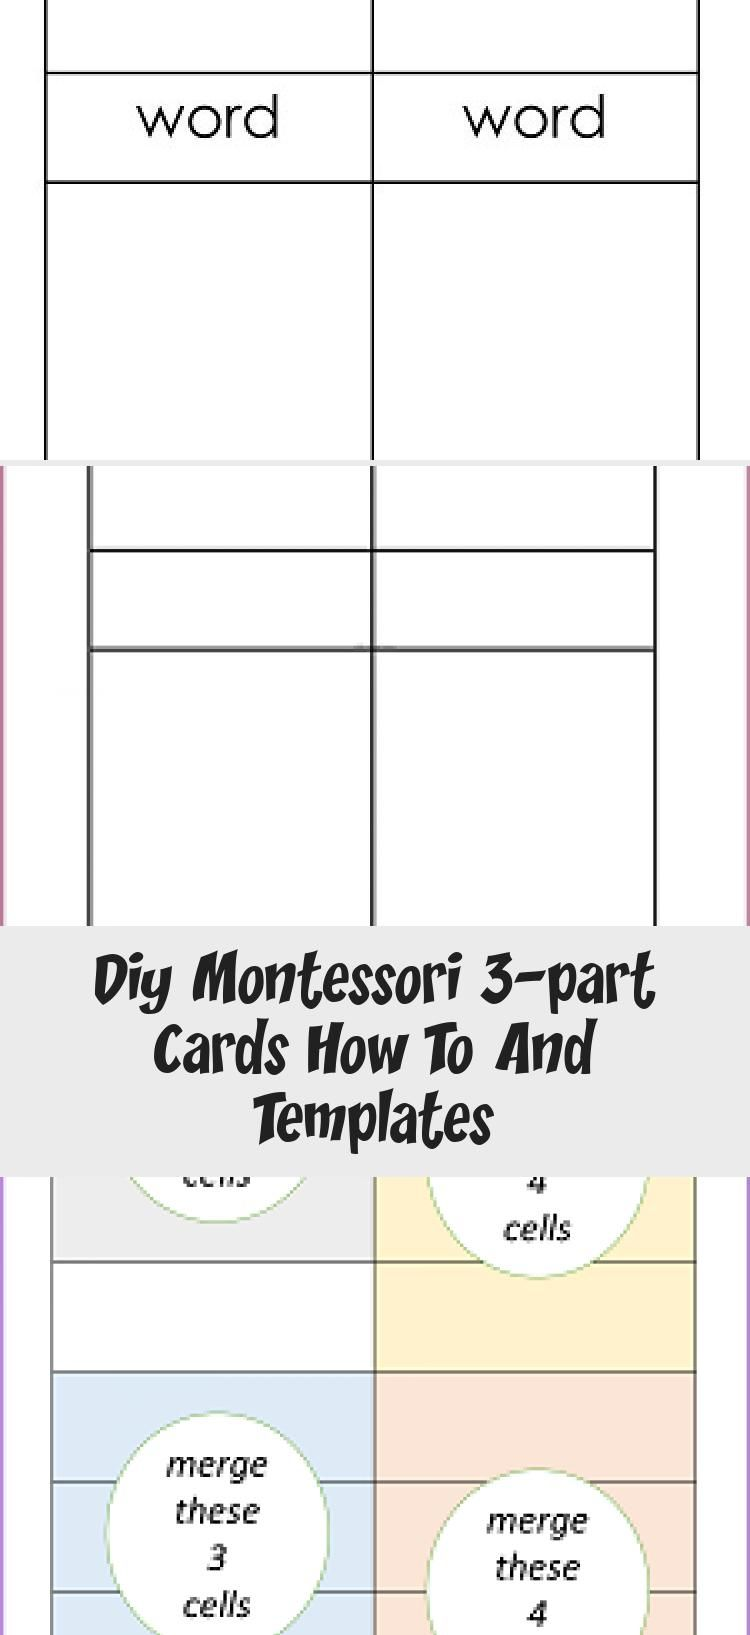 Diy Montessori 3 Part Cards How To And Templates Informational Blog Post And Video With Information About How To Make 3 Par Template Freebie Templates Cards